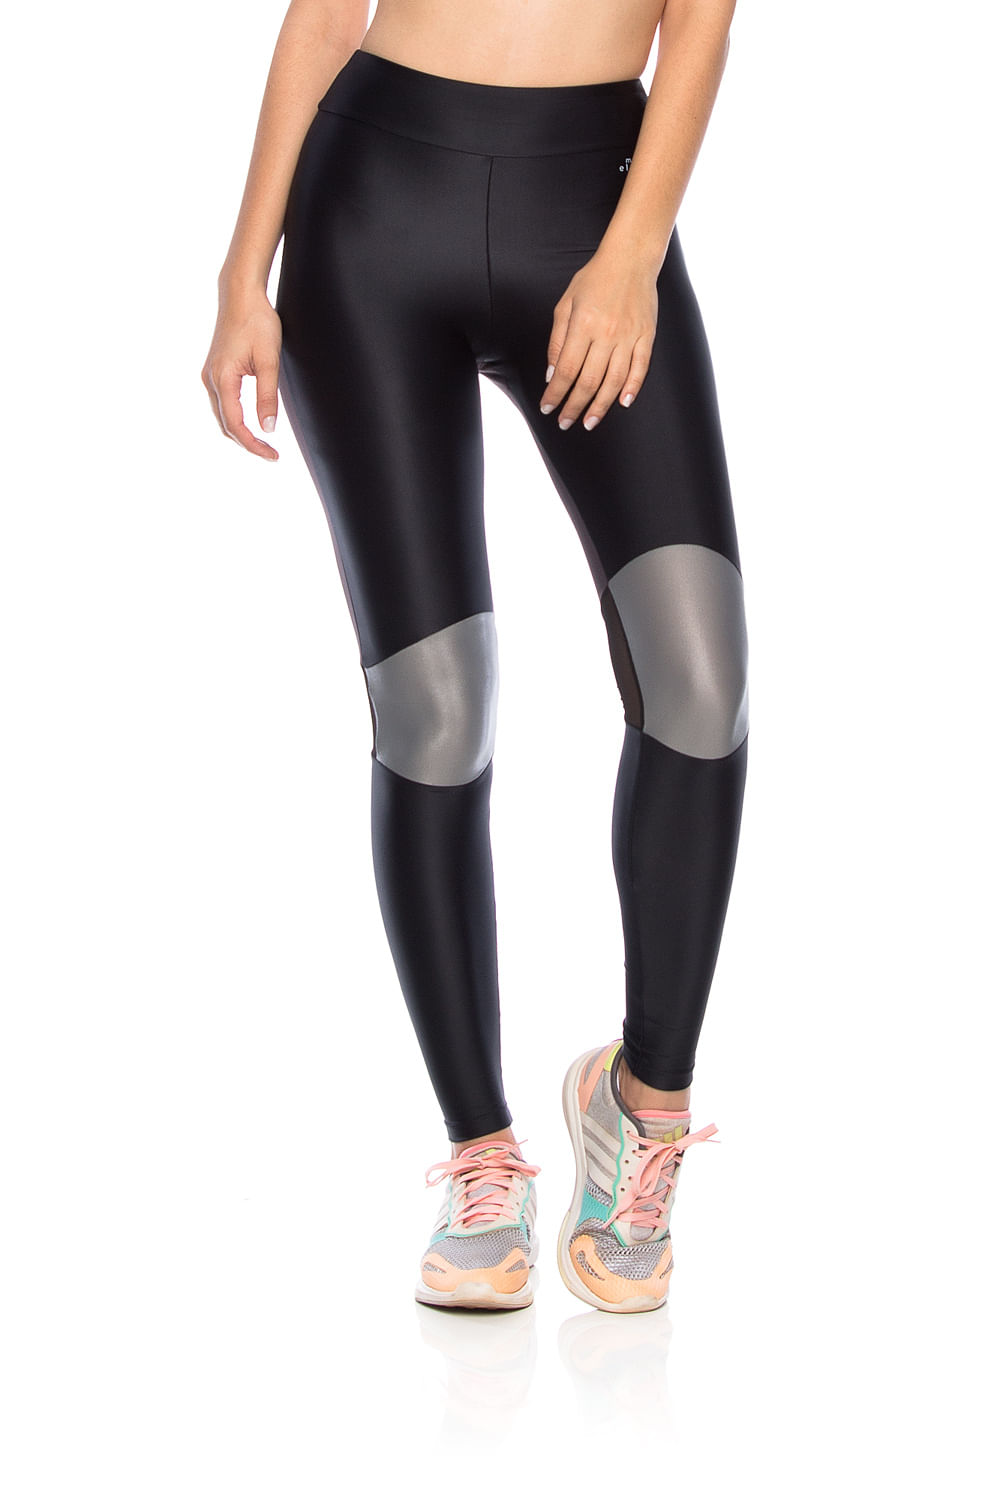 legging-fitness-power-emana-moda-academia--7-